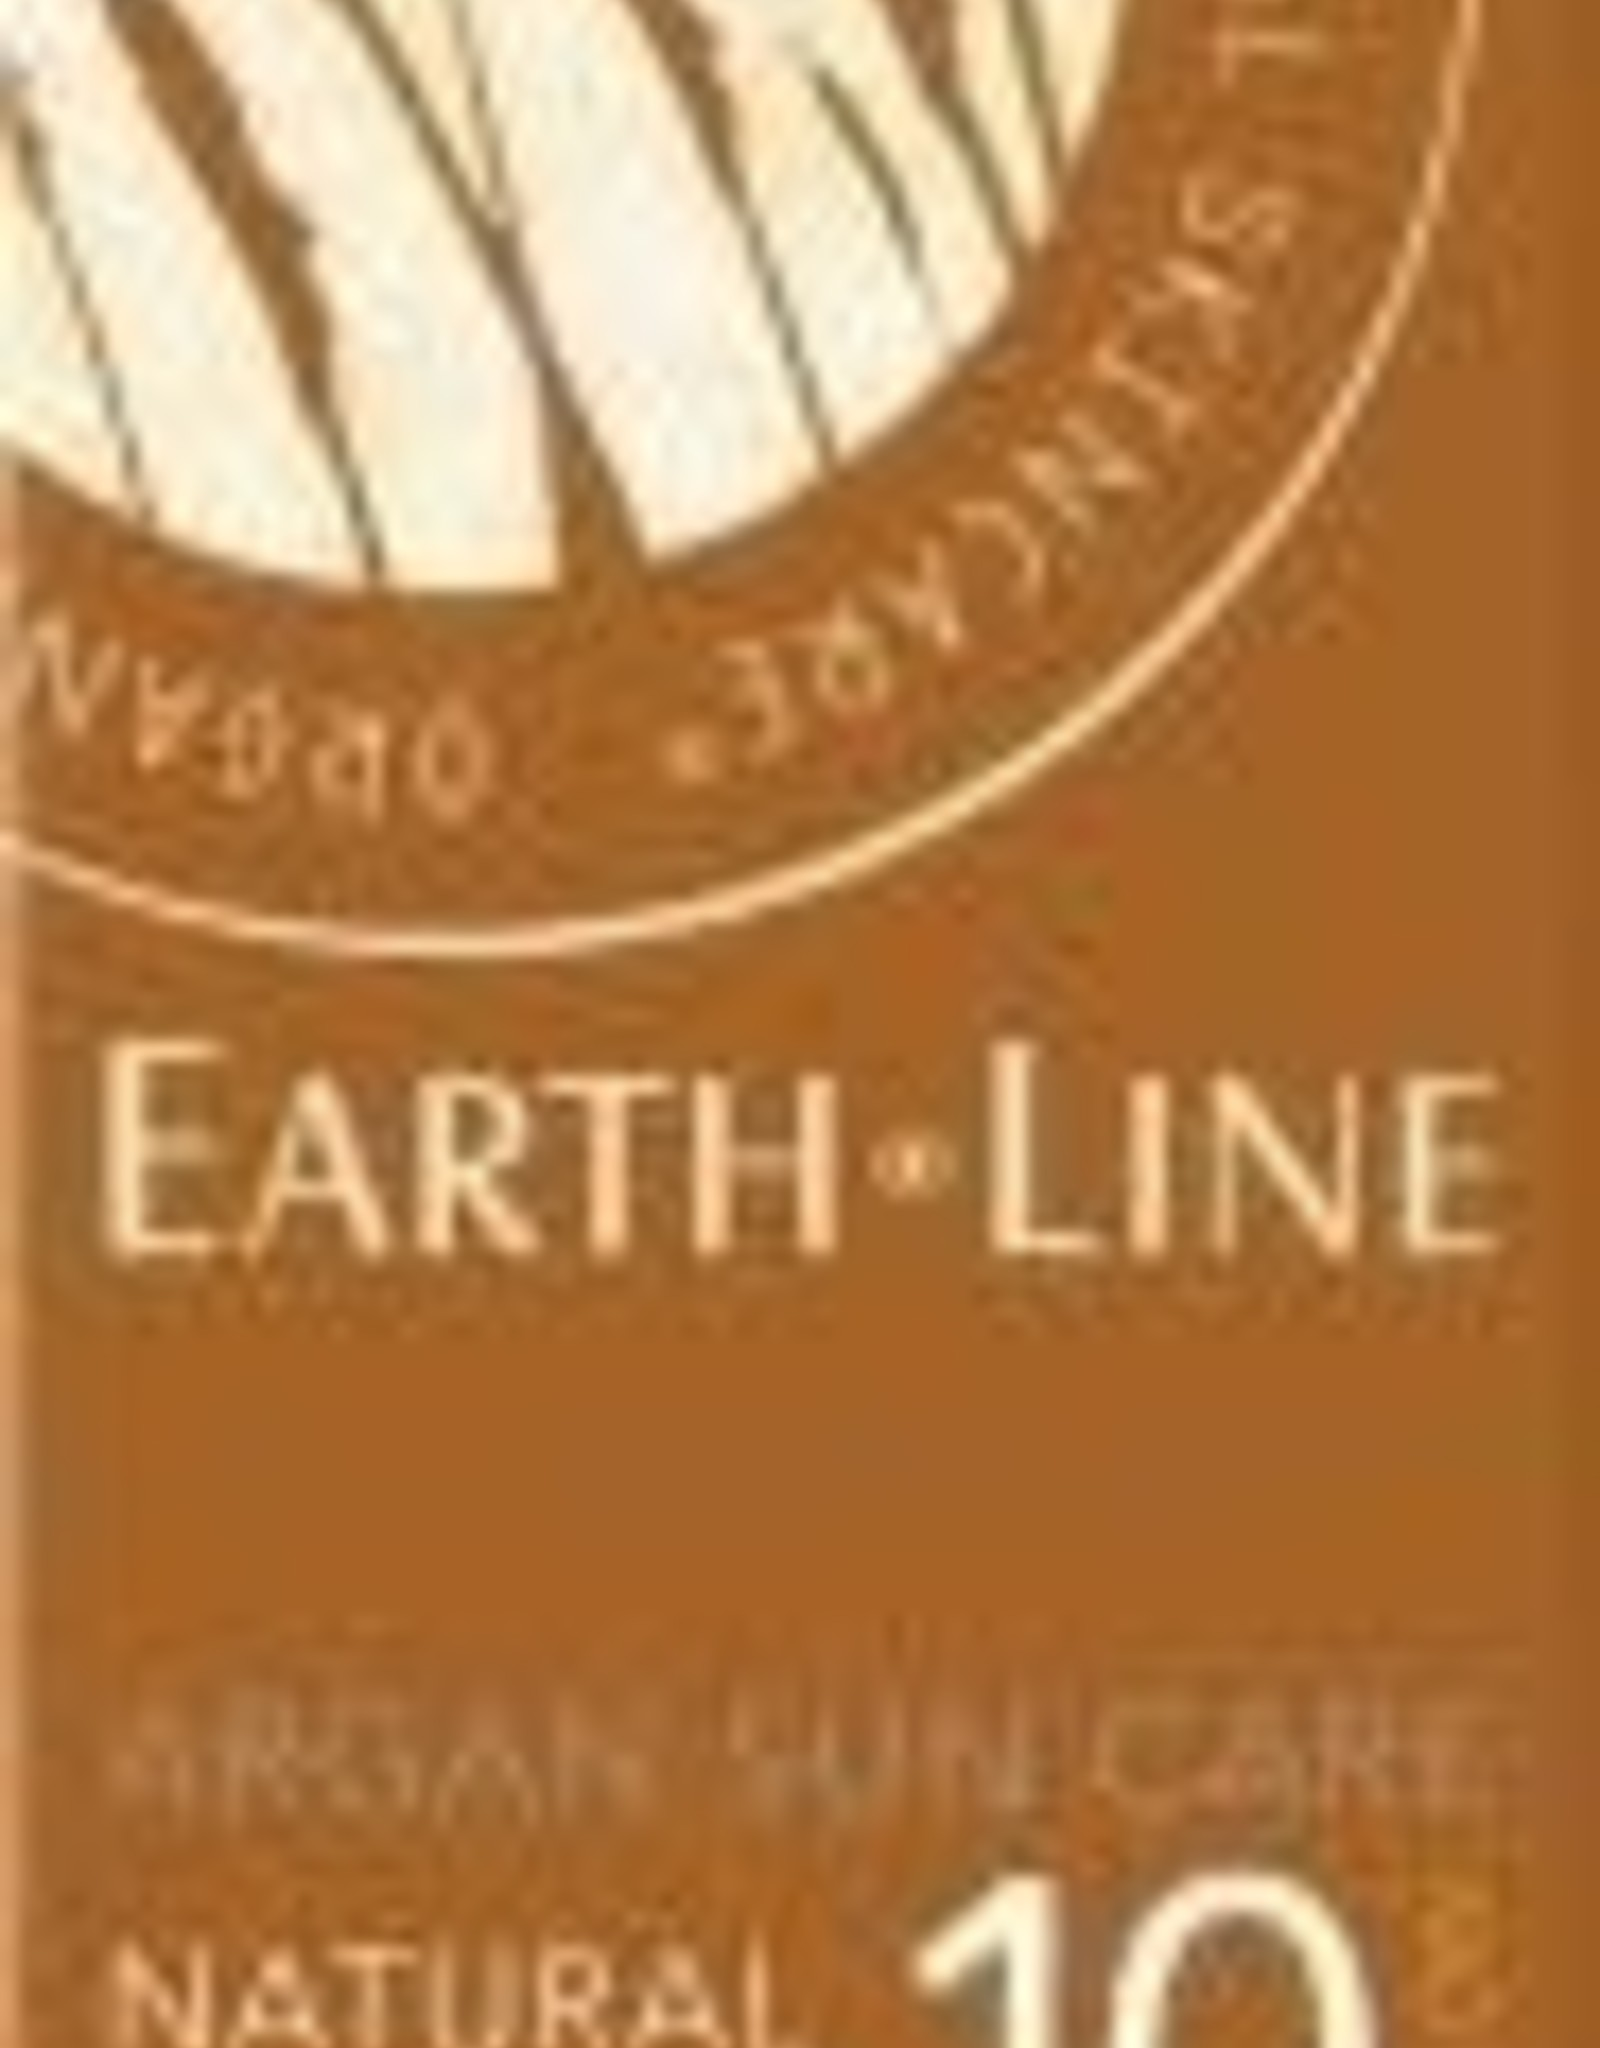 Earth Line Argan sun care - natural lip care 10ml